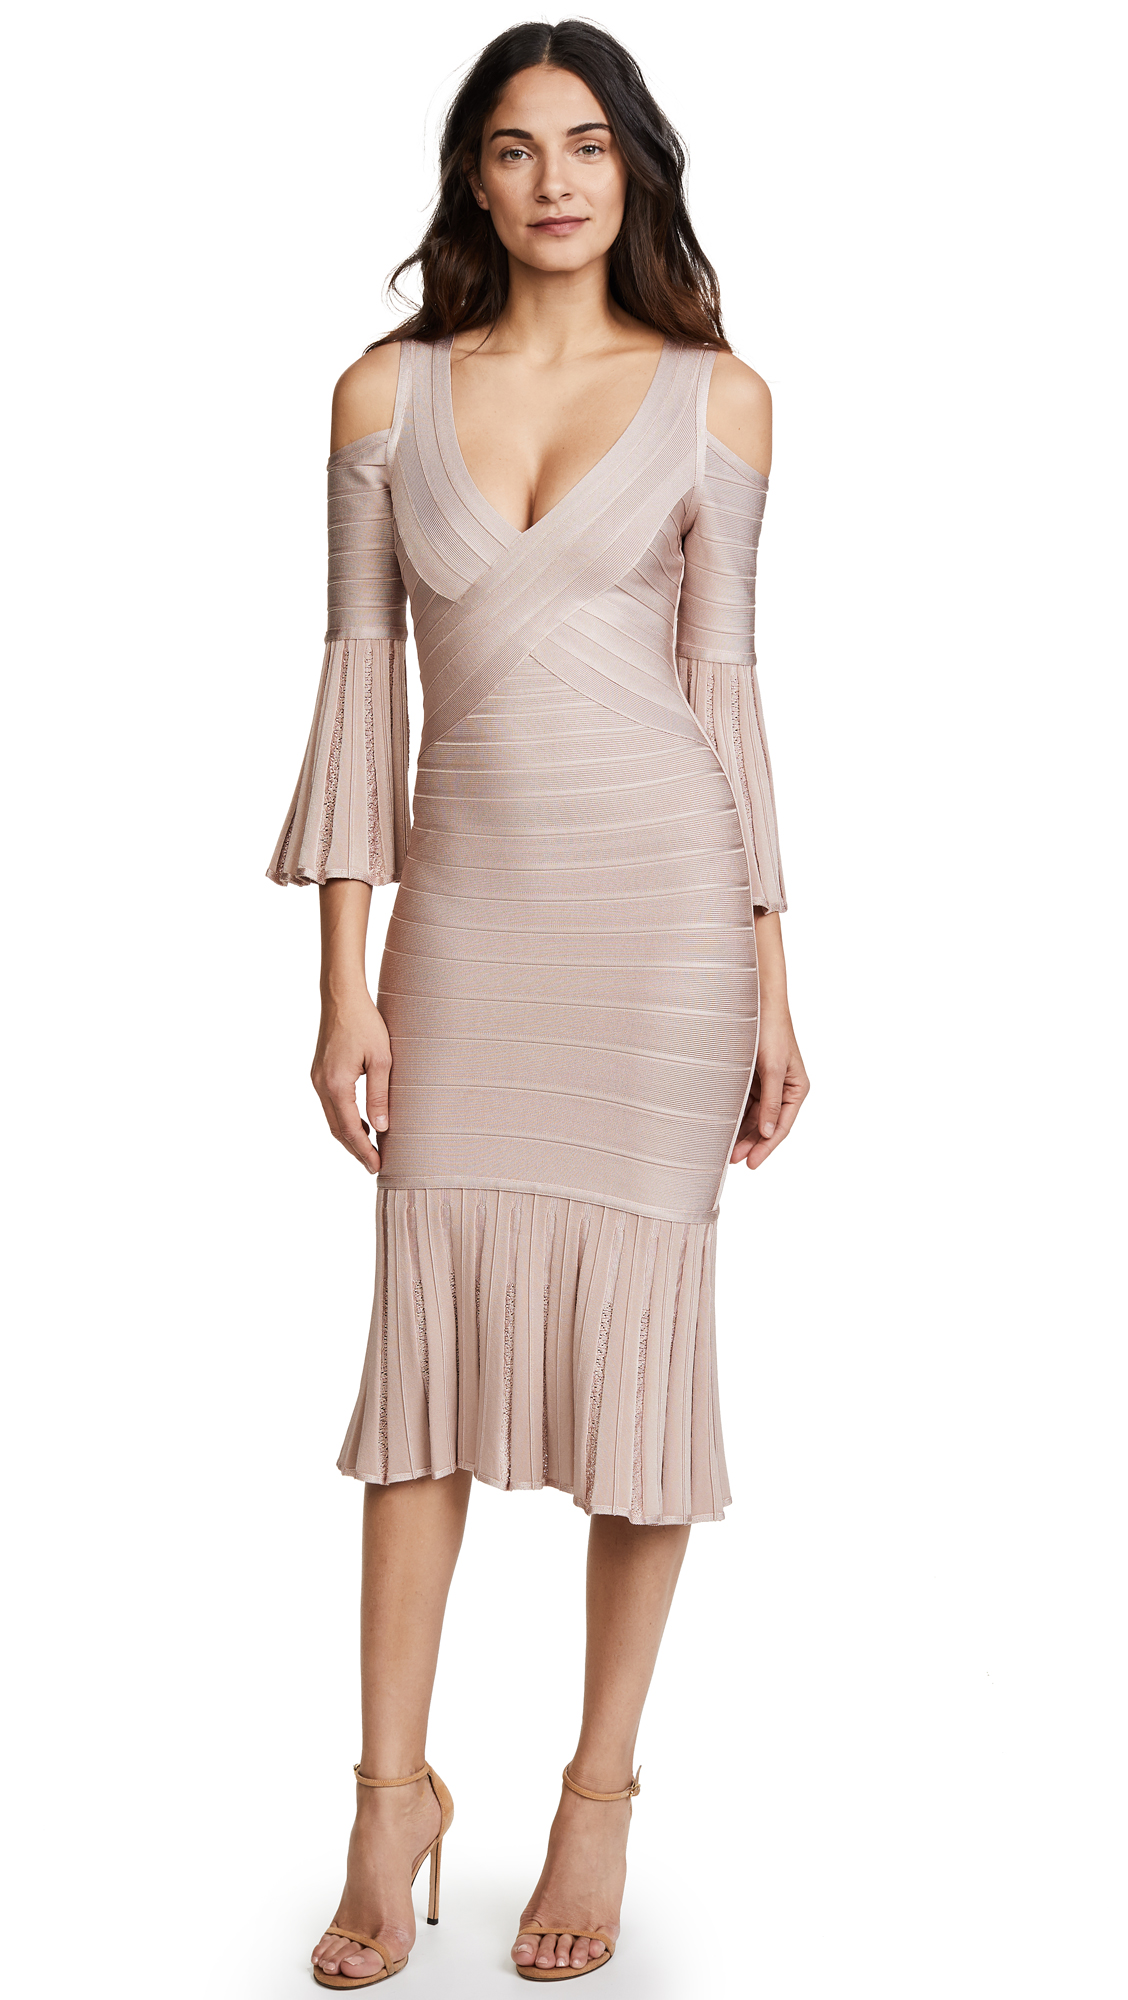 Herve Leger Autumn Dress - Bare